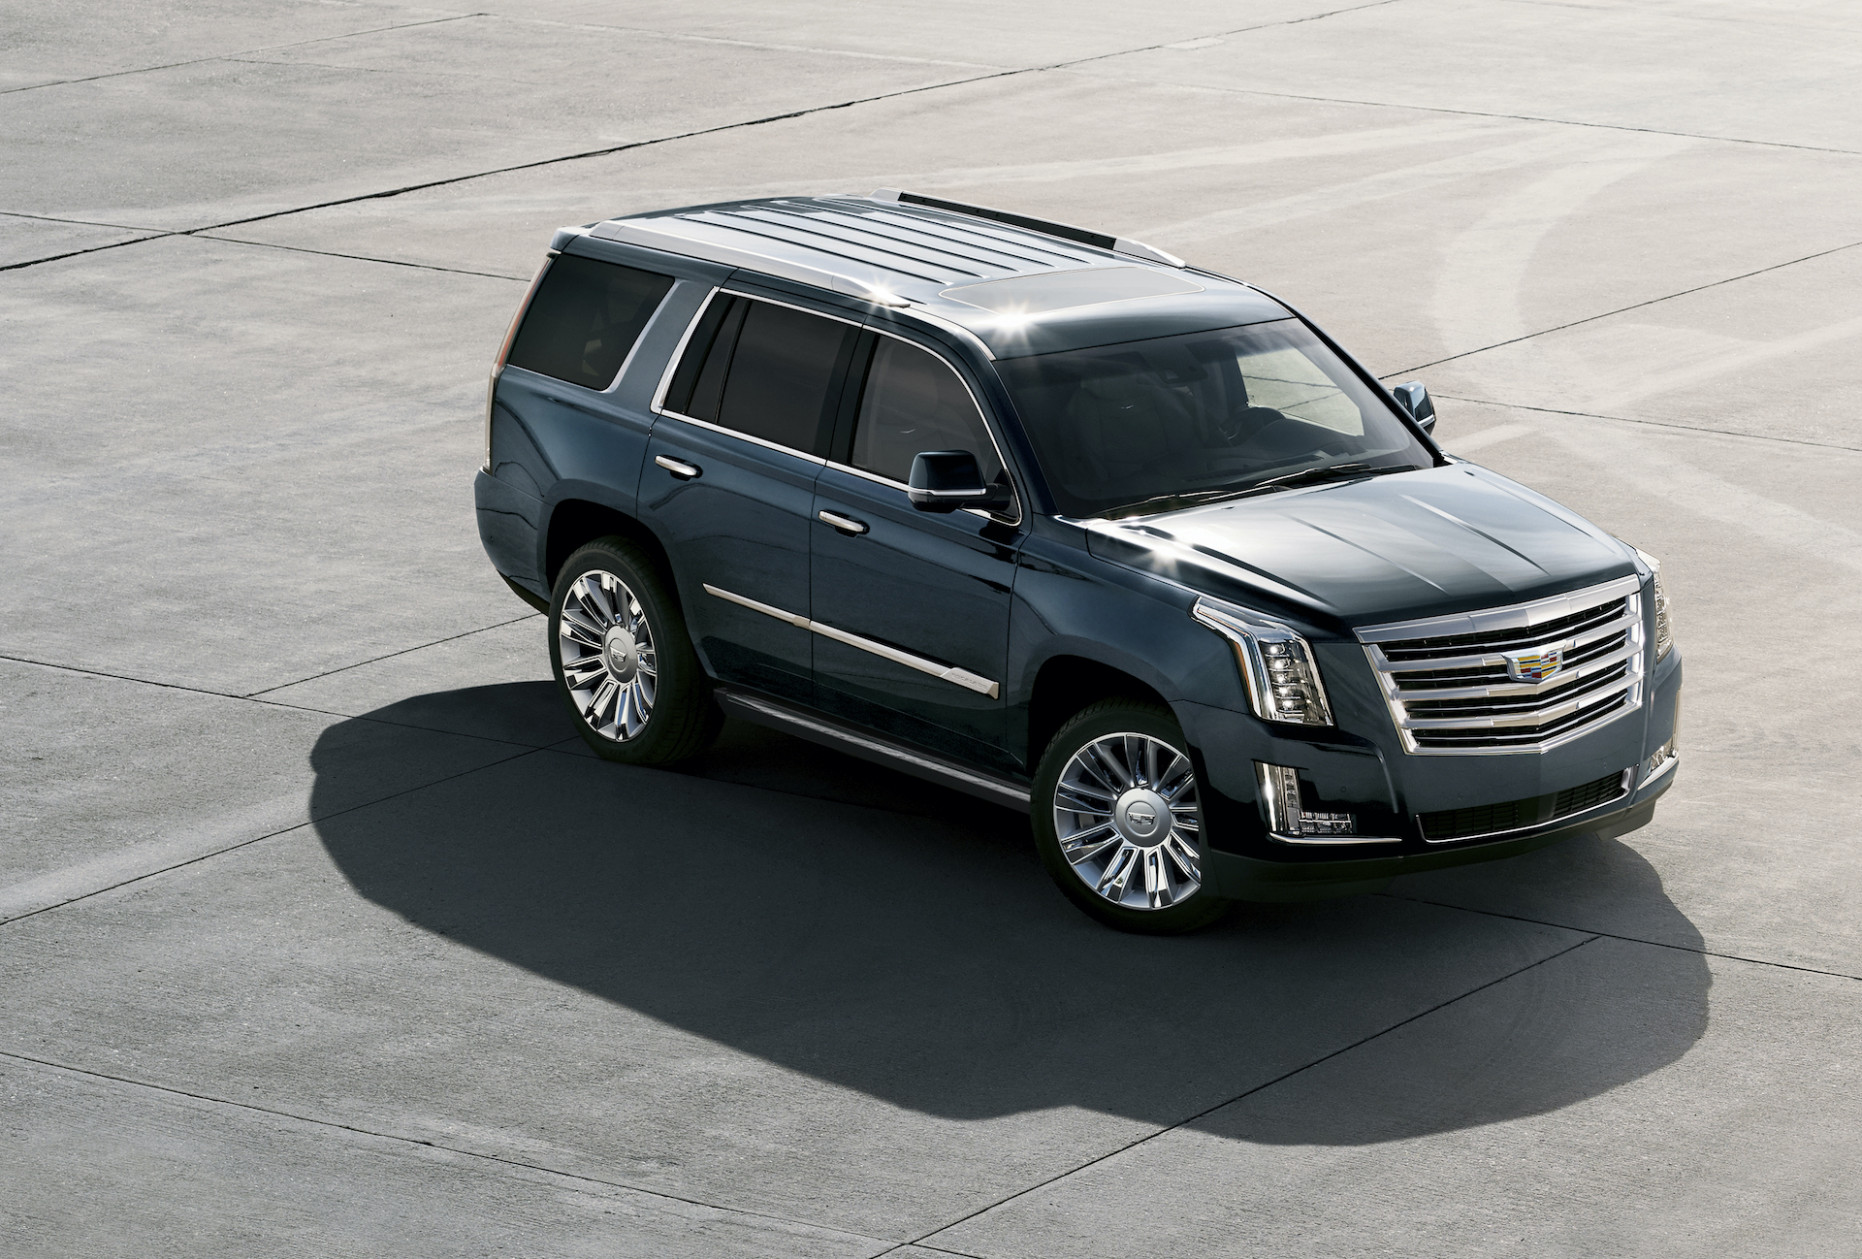 9 Cadillac Escalade Review, Ratings, Specs, Prices, and Photos ..